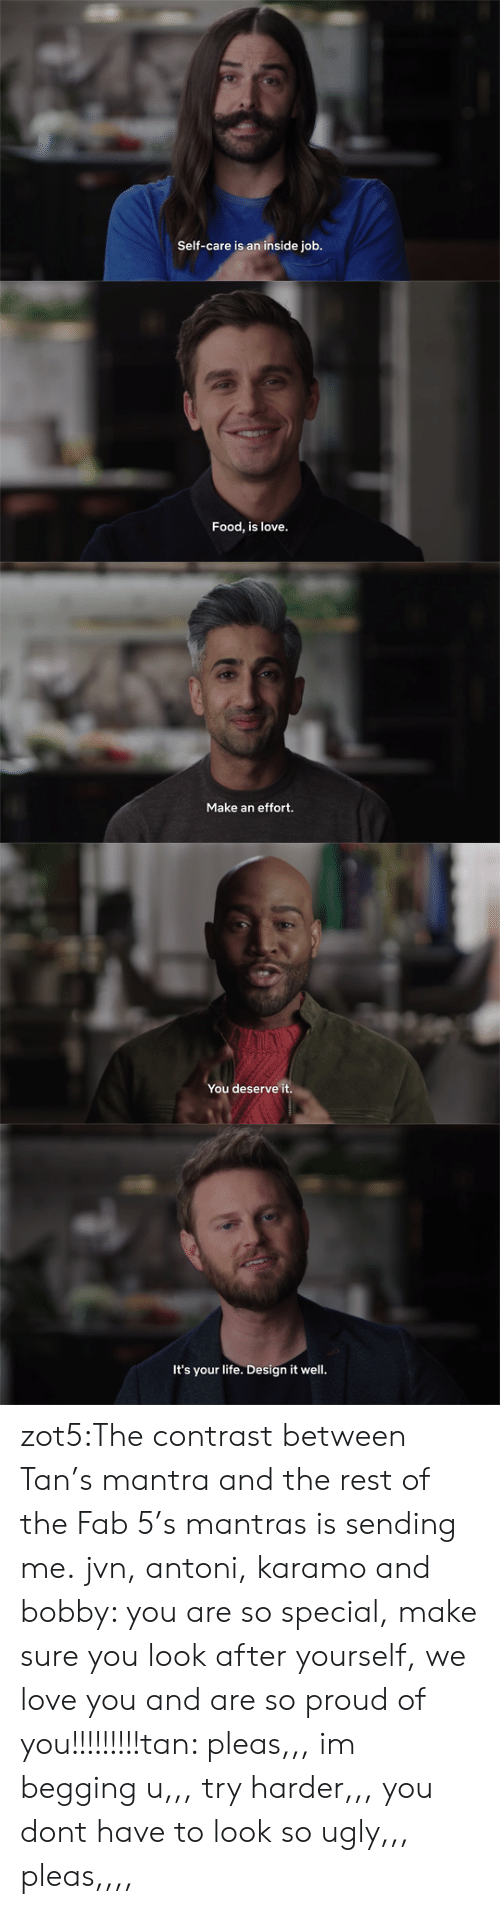 So Proud Of You: Self-care is an inside job.   Food, is love.   Make an effort.   You deserve it.   It's your life. Design it well. zot5:The contrast between Tan's mantra and the rest of the Fab 5's mantras is sending me.  jvn, antoni, karamo and bobby: you are so special, make sure you look after yourself, we love you and are so proud of you!!!!!!!!!tan: pleas,,, im begging u,,, try harder,,, you dont have to look so ugly,,, pleas,,,,